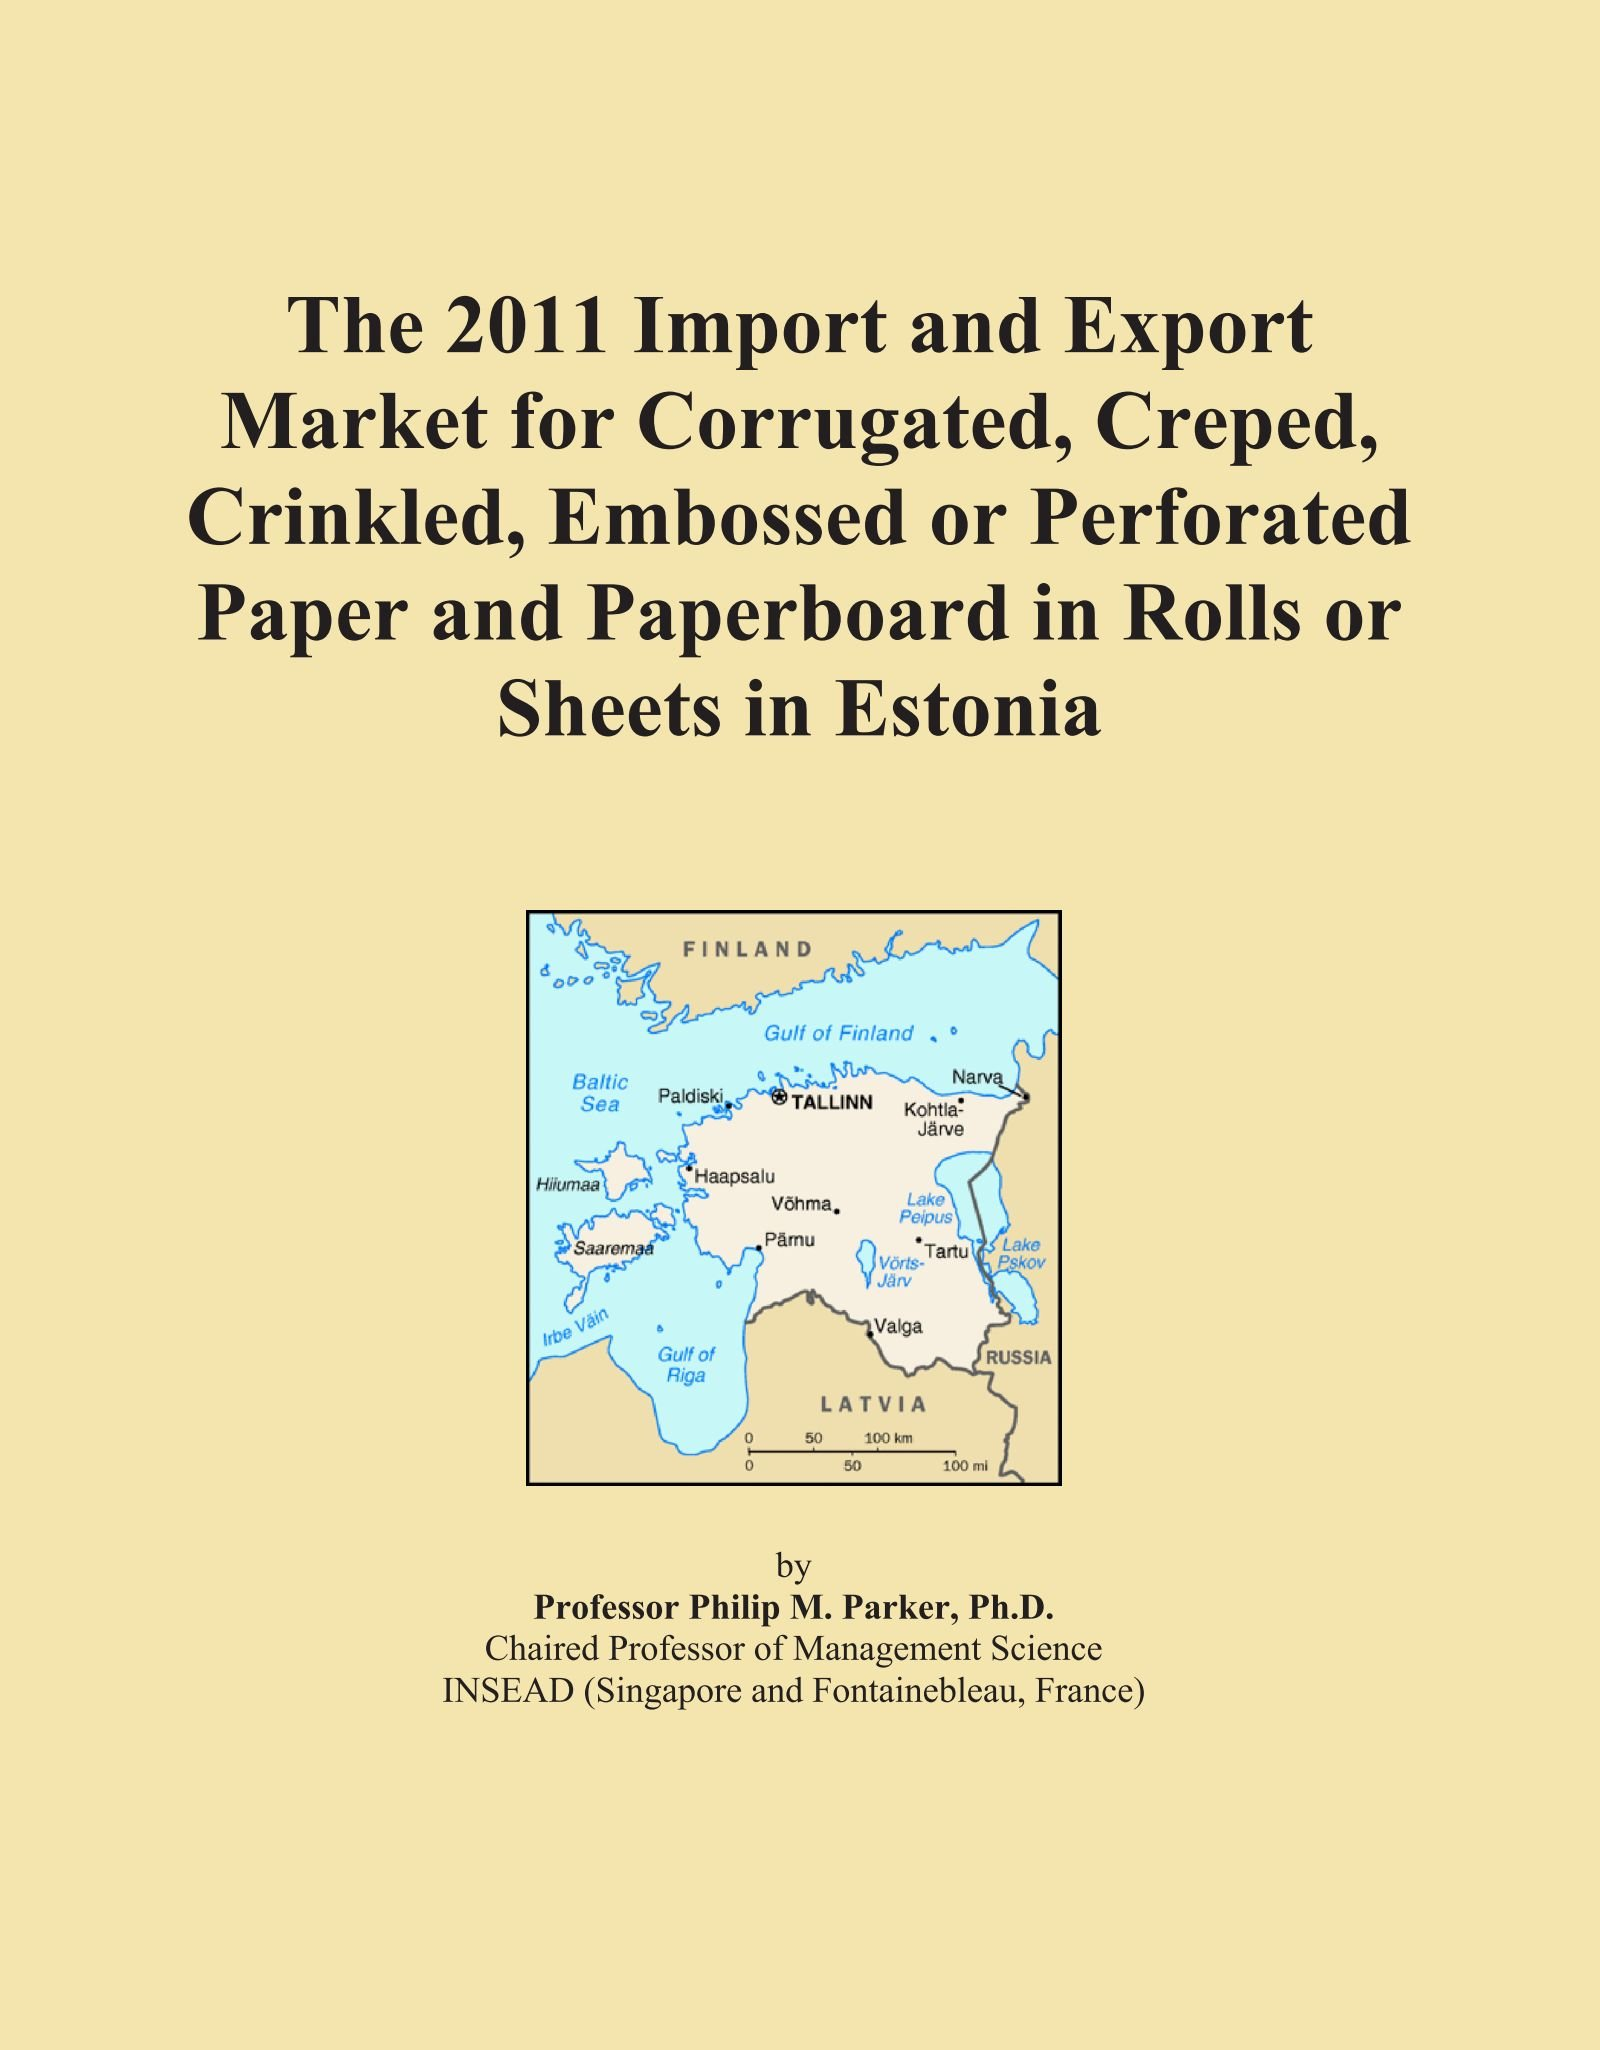 The 2011 Import and Export Market for Corrugated, Creped, Crinkled, Embossed or Perforated Paper and Paperboard in Rolls or Sheets in Estonia ebook